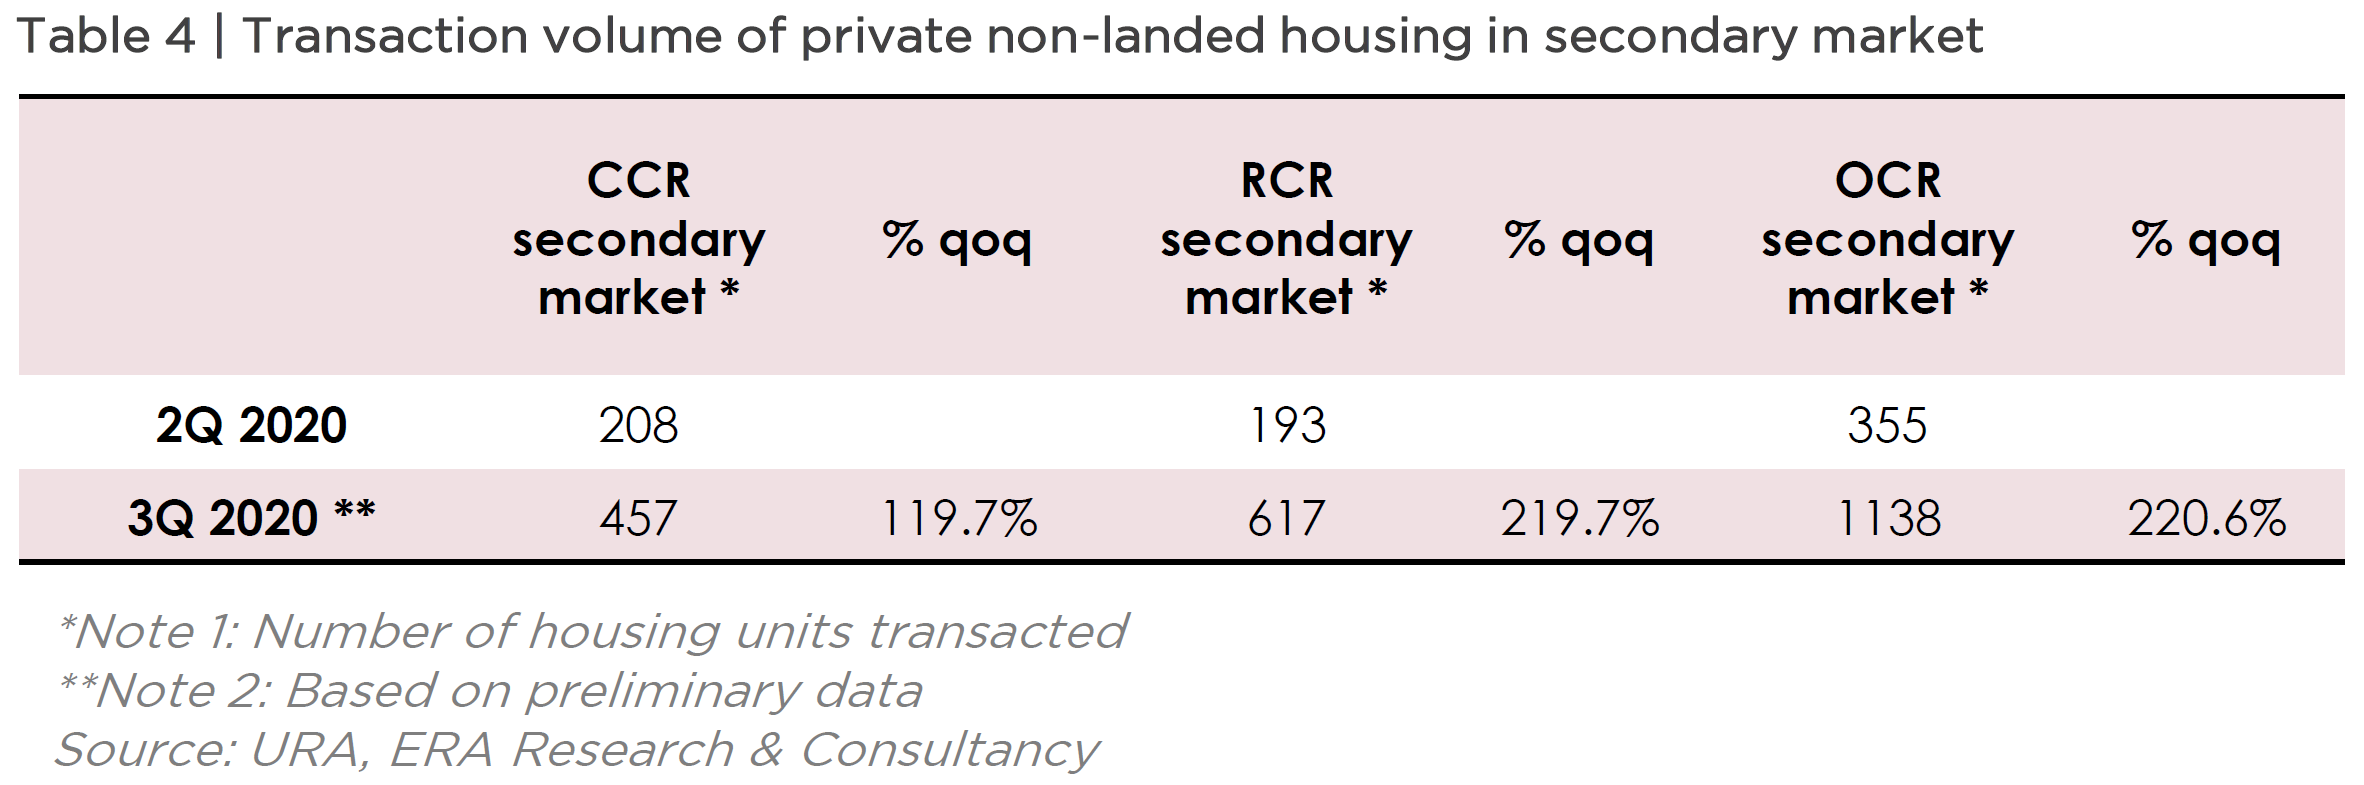 Transaction Volume of Private Non-Landed Housing in Secondary Market